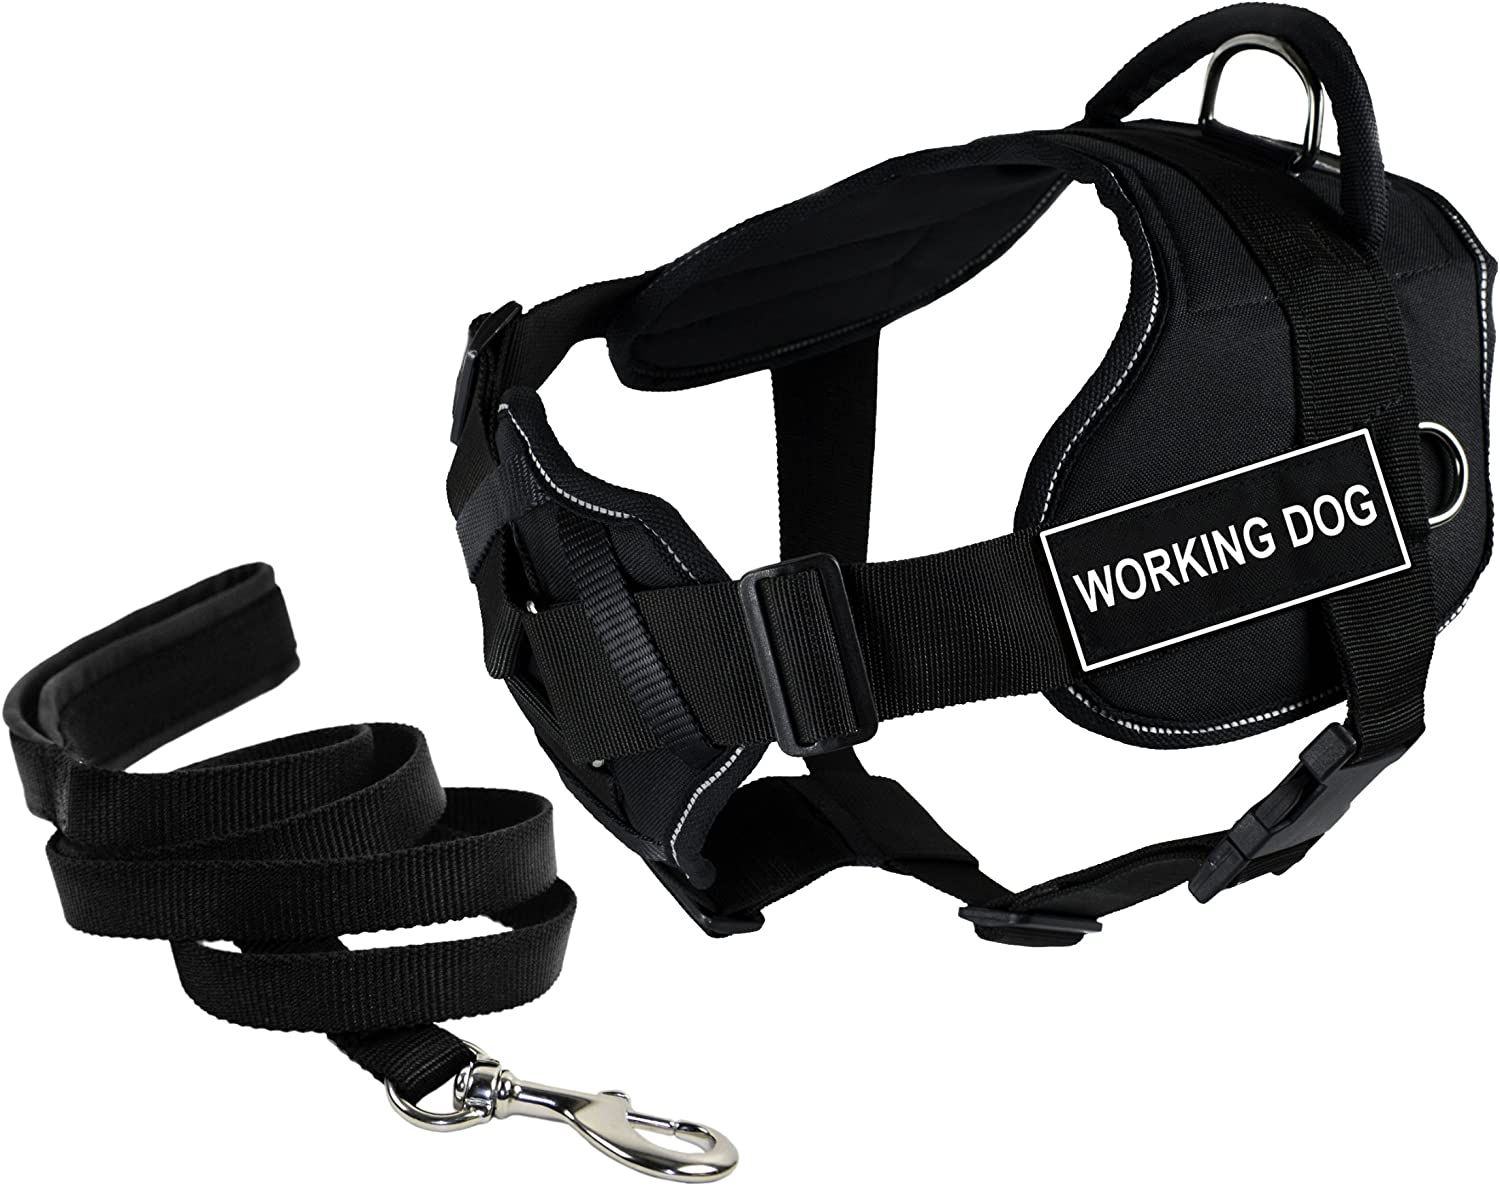 Dean & Tyler's DT Fun Chest Support WORKING DOG Harness with Reflective Trim, Medium, and 6 ft Padded Puppy Leash.